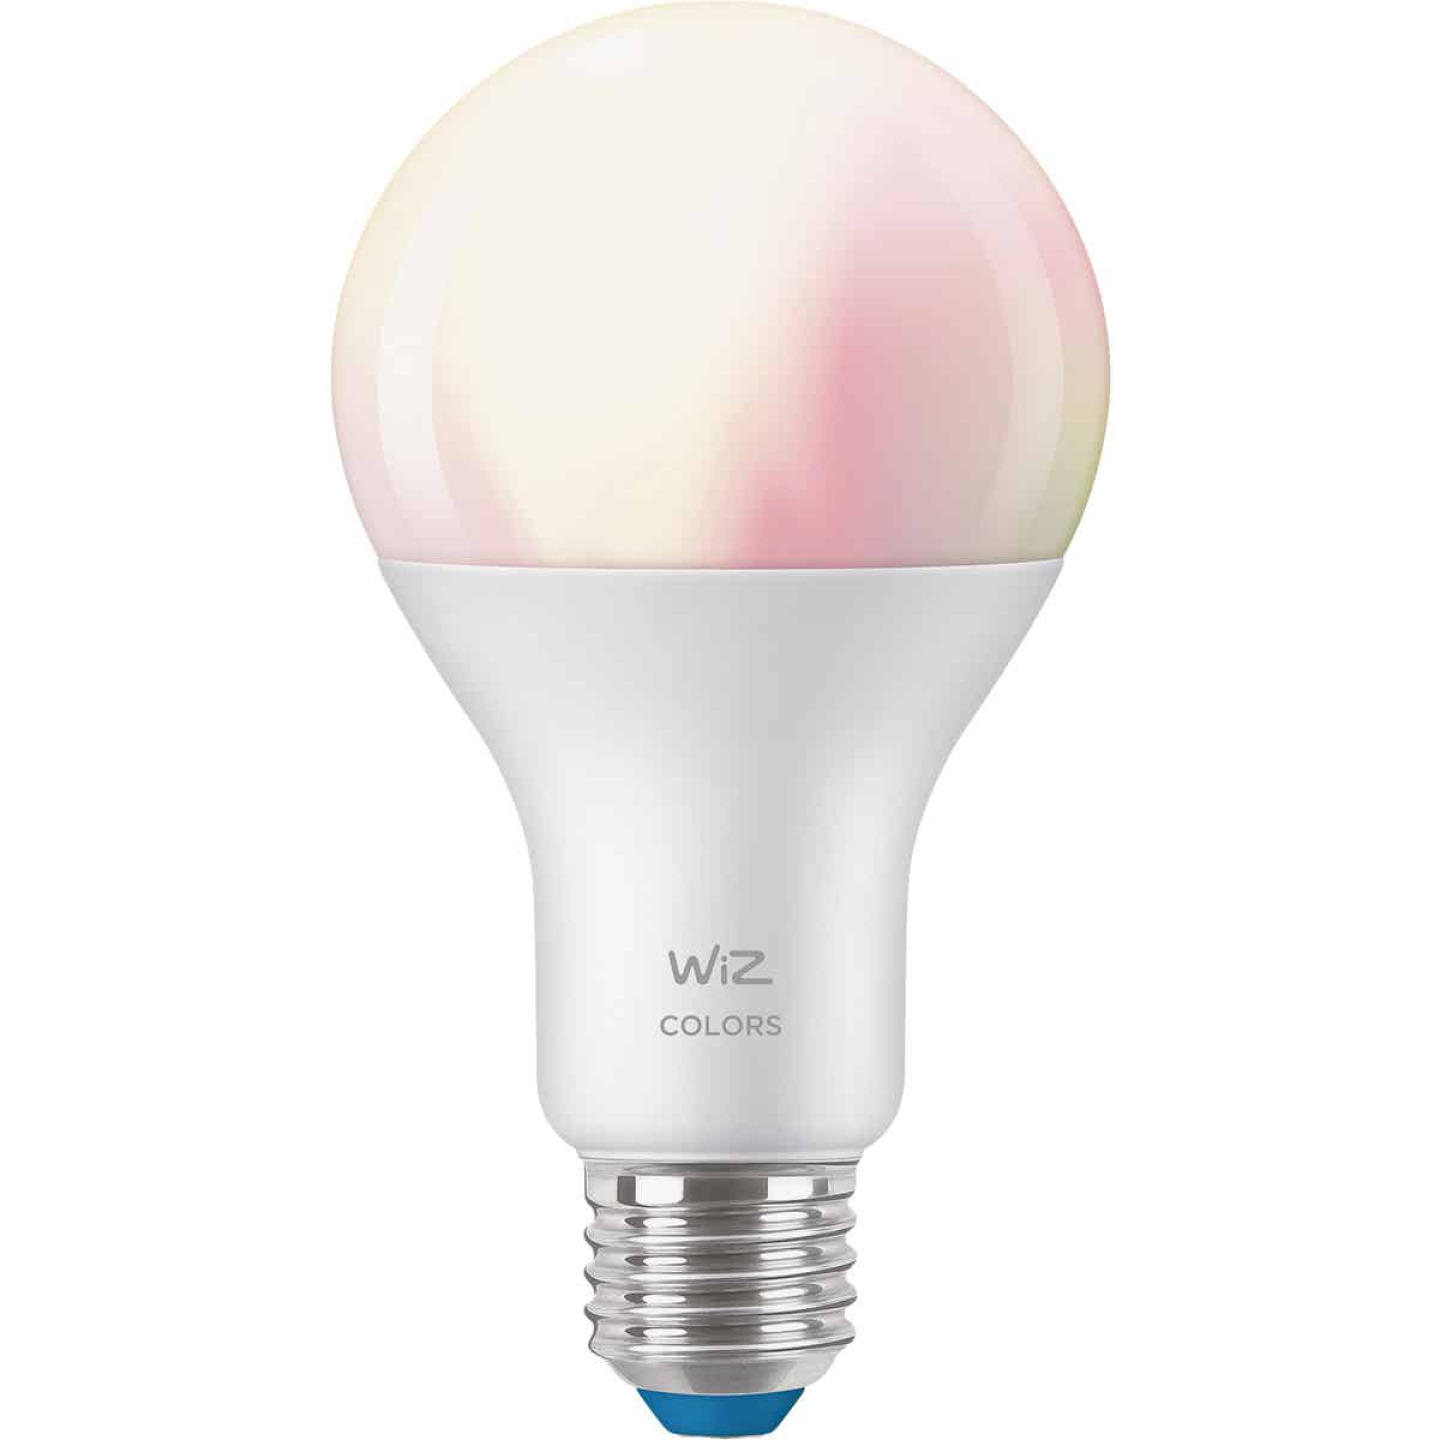 Wiz 100W Equivalent Color Changing A21 Medium Dimmable Smart LED Light Bulb Image 2